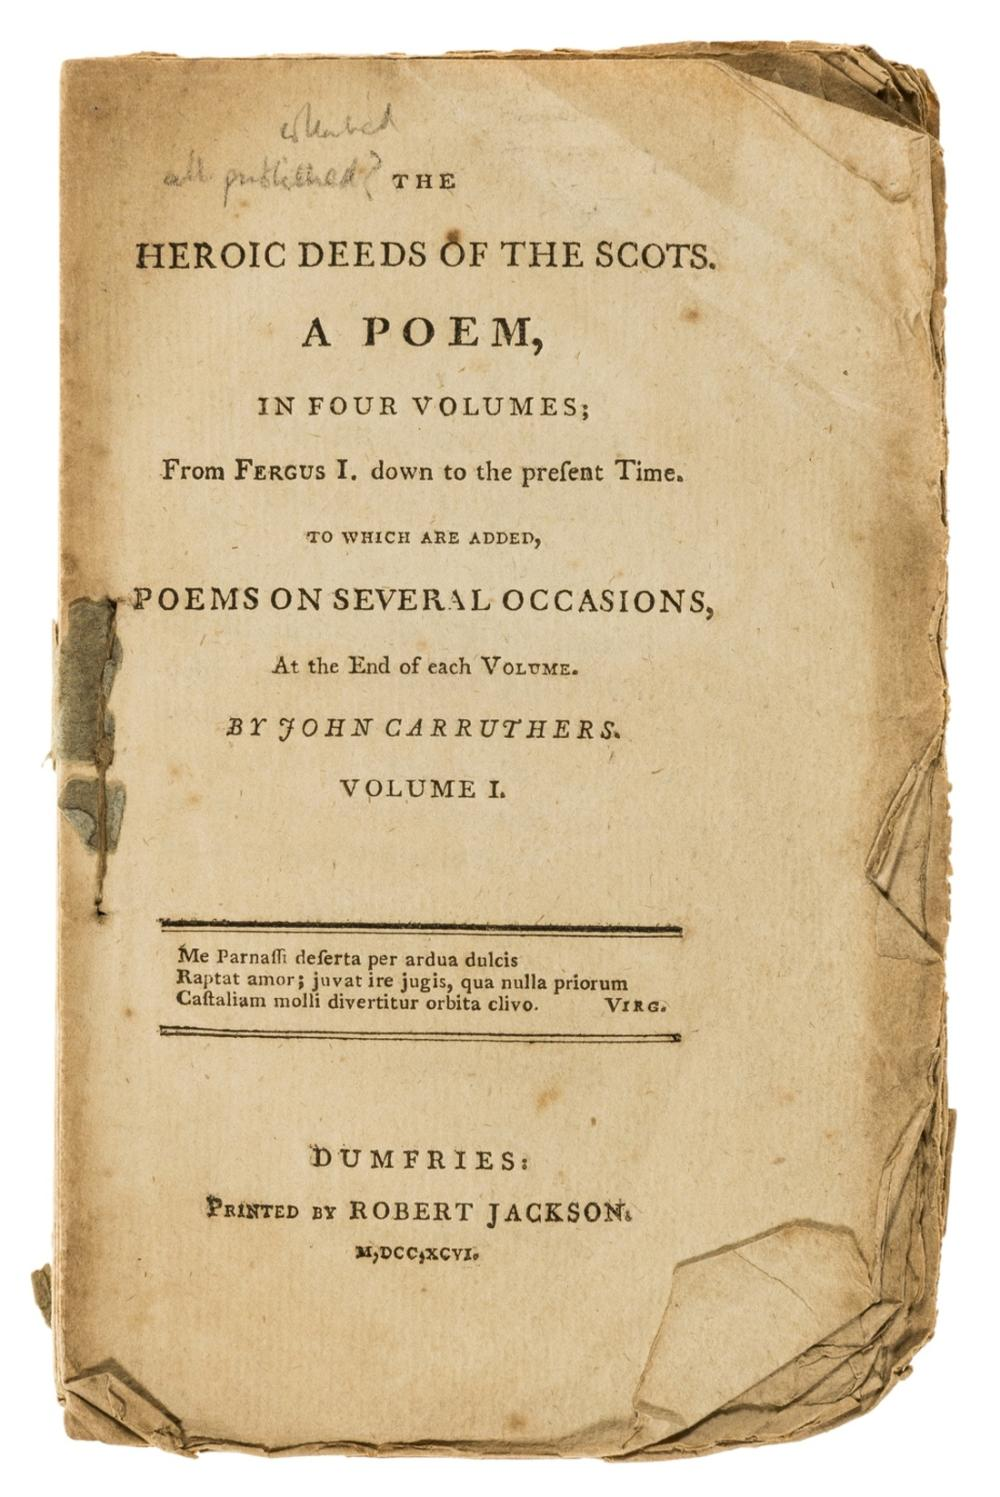 Scotland.- Carruthers (John) The heroic deeds of the Scots. A poem, in four volumes; from Fergus I. down to the present time. To which are added, poems on several occasions, rare. ESTC records only …